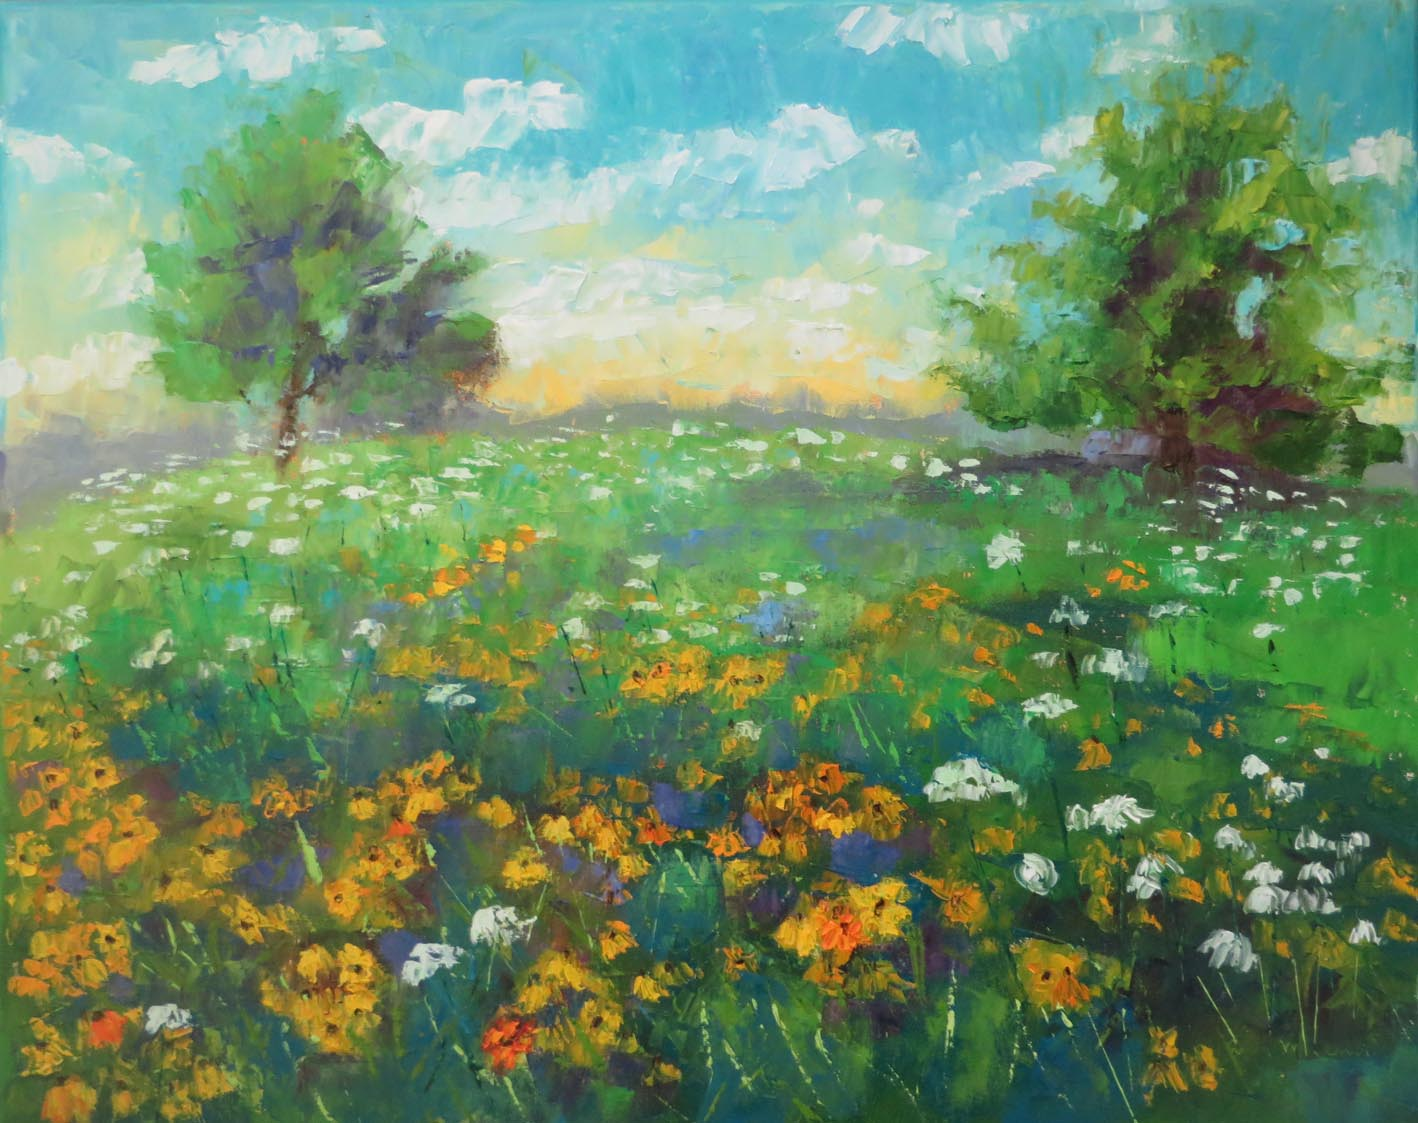 Daisies and Lace by Ann McCann 16 by 20 Oil on Gallery Wrap 72 10.jpg